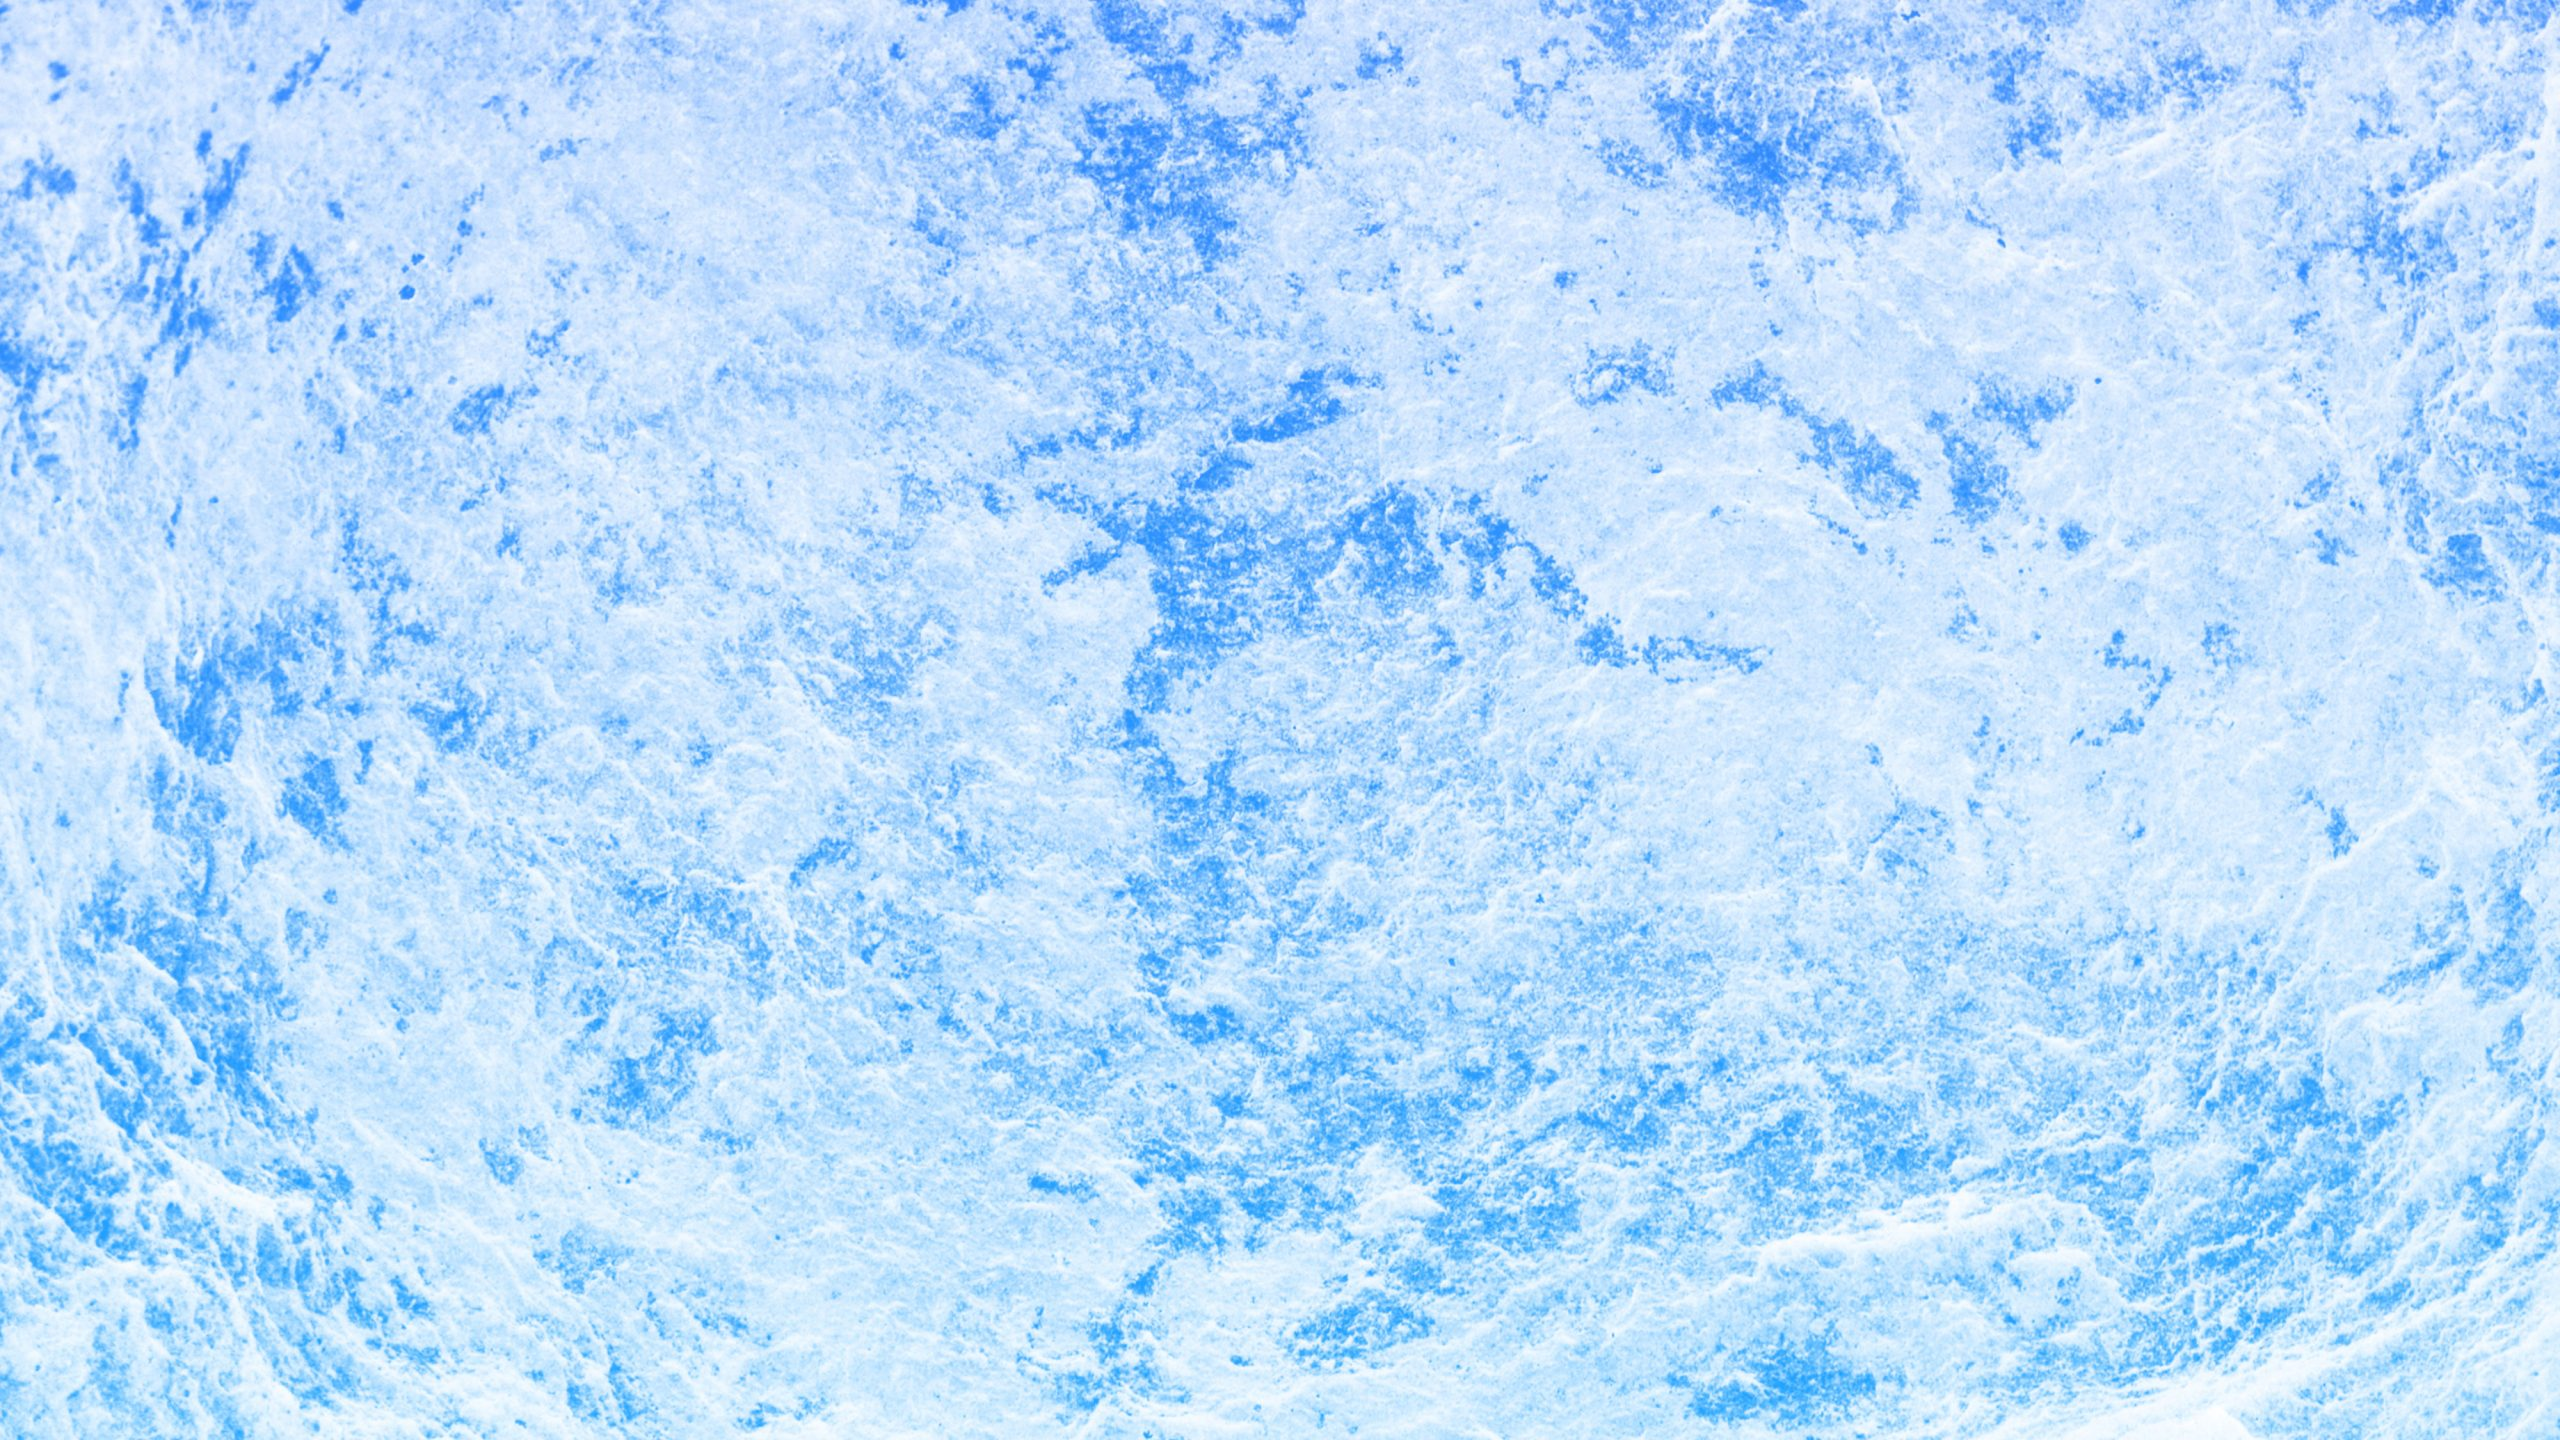 White and blue surface wallpaper